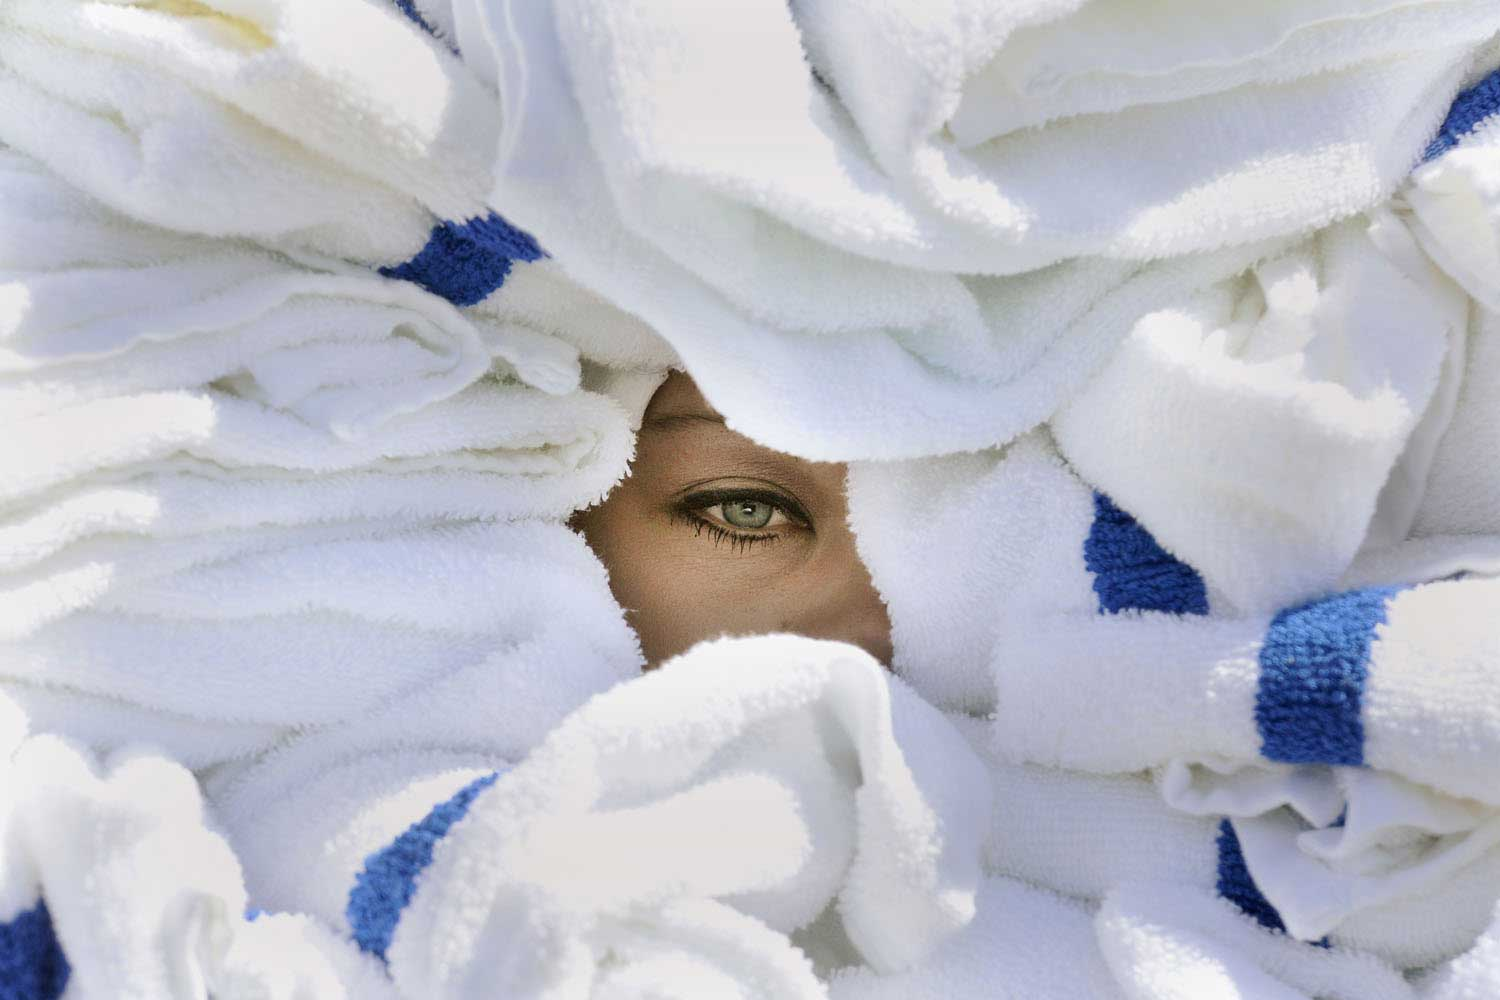 Rebecca Redwine from Grandma's in the Park has one eye visible from between nearly 100 towels, as she competes in the towel carrying contest during the 10th annual Iron Range Housekeeping Olympics held in AmericInn Lodge in Virginia, Minn., Sept. 8, 2014.